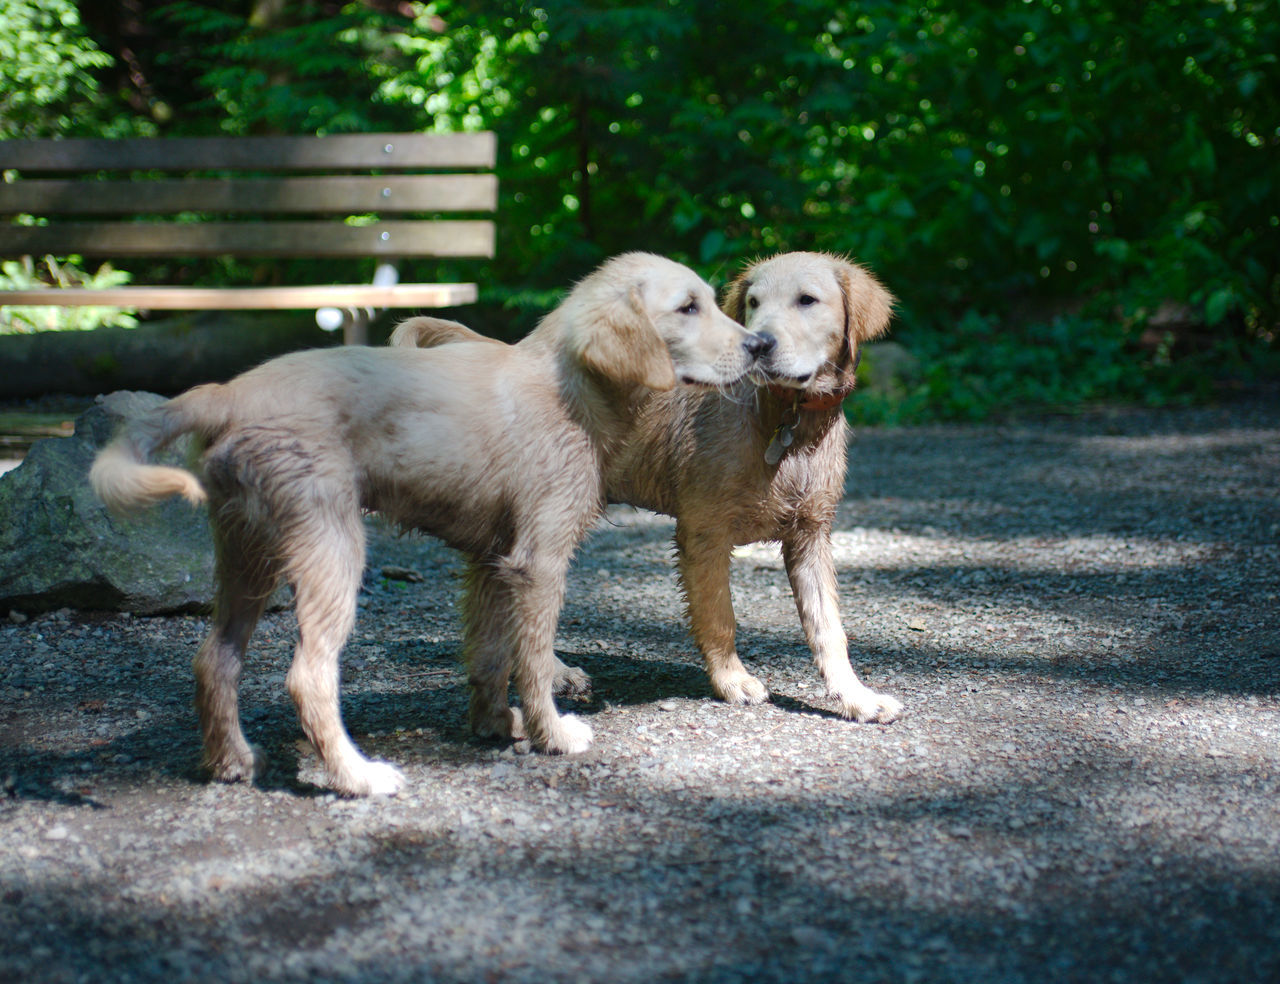 Beautiful stock photos of welpen, animal themes, mammal, dog, domestic animals